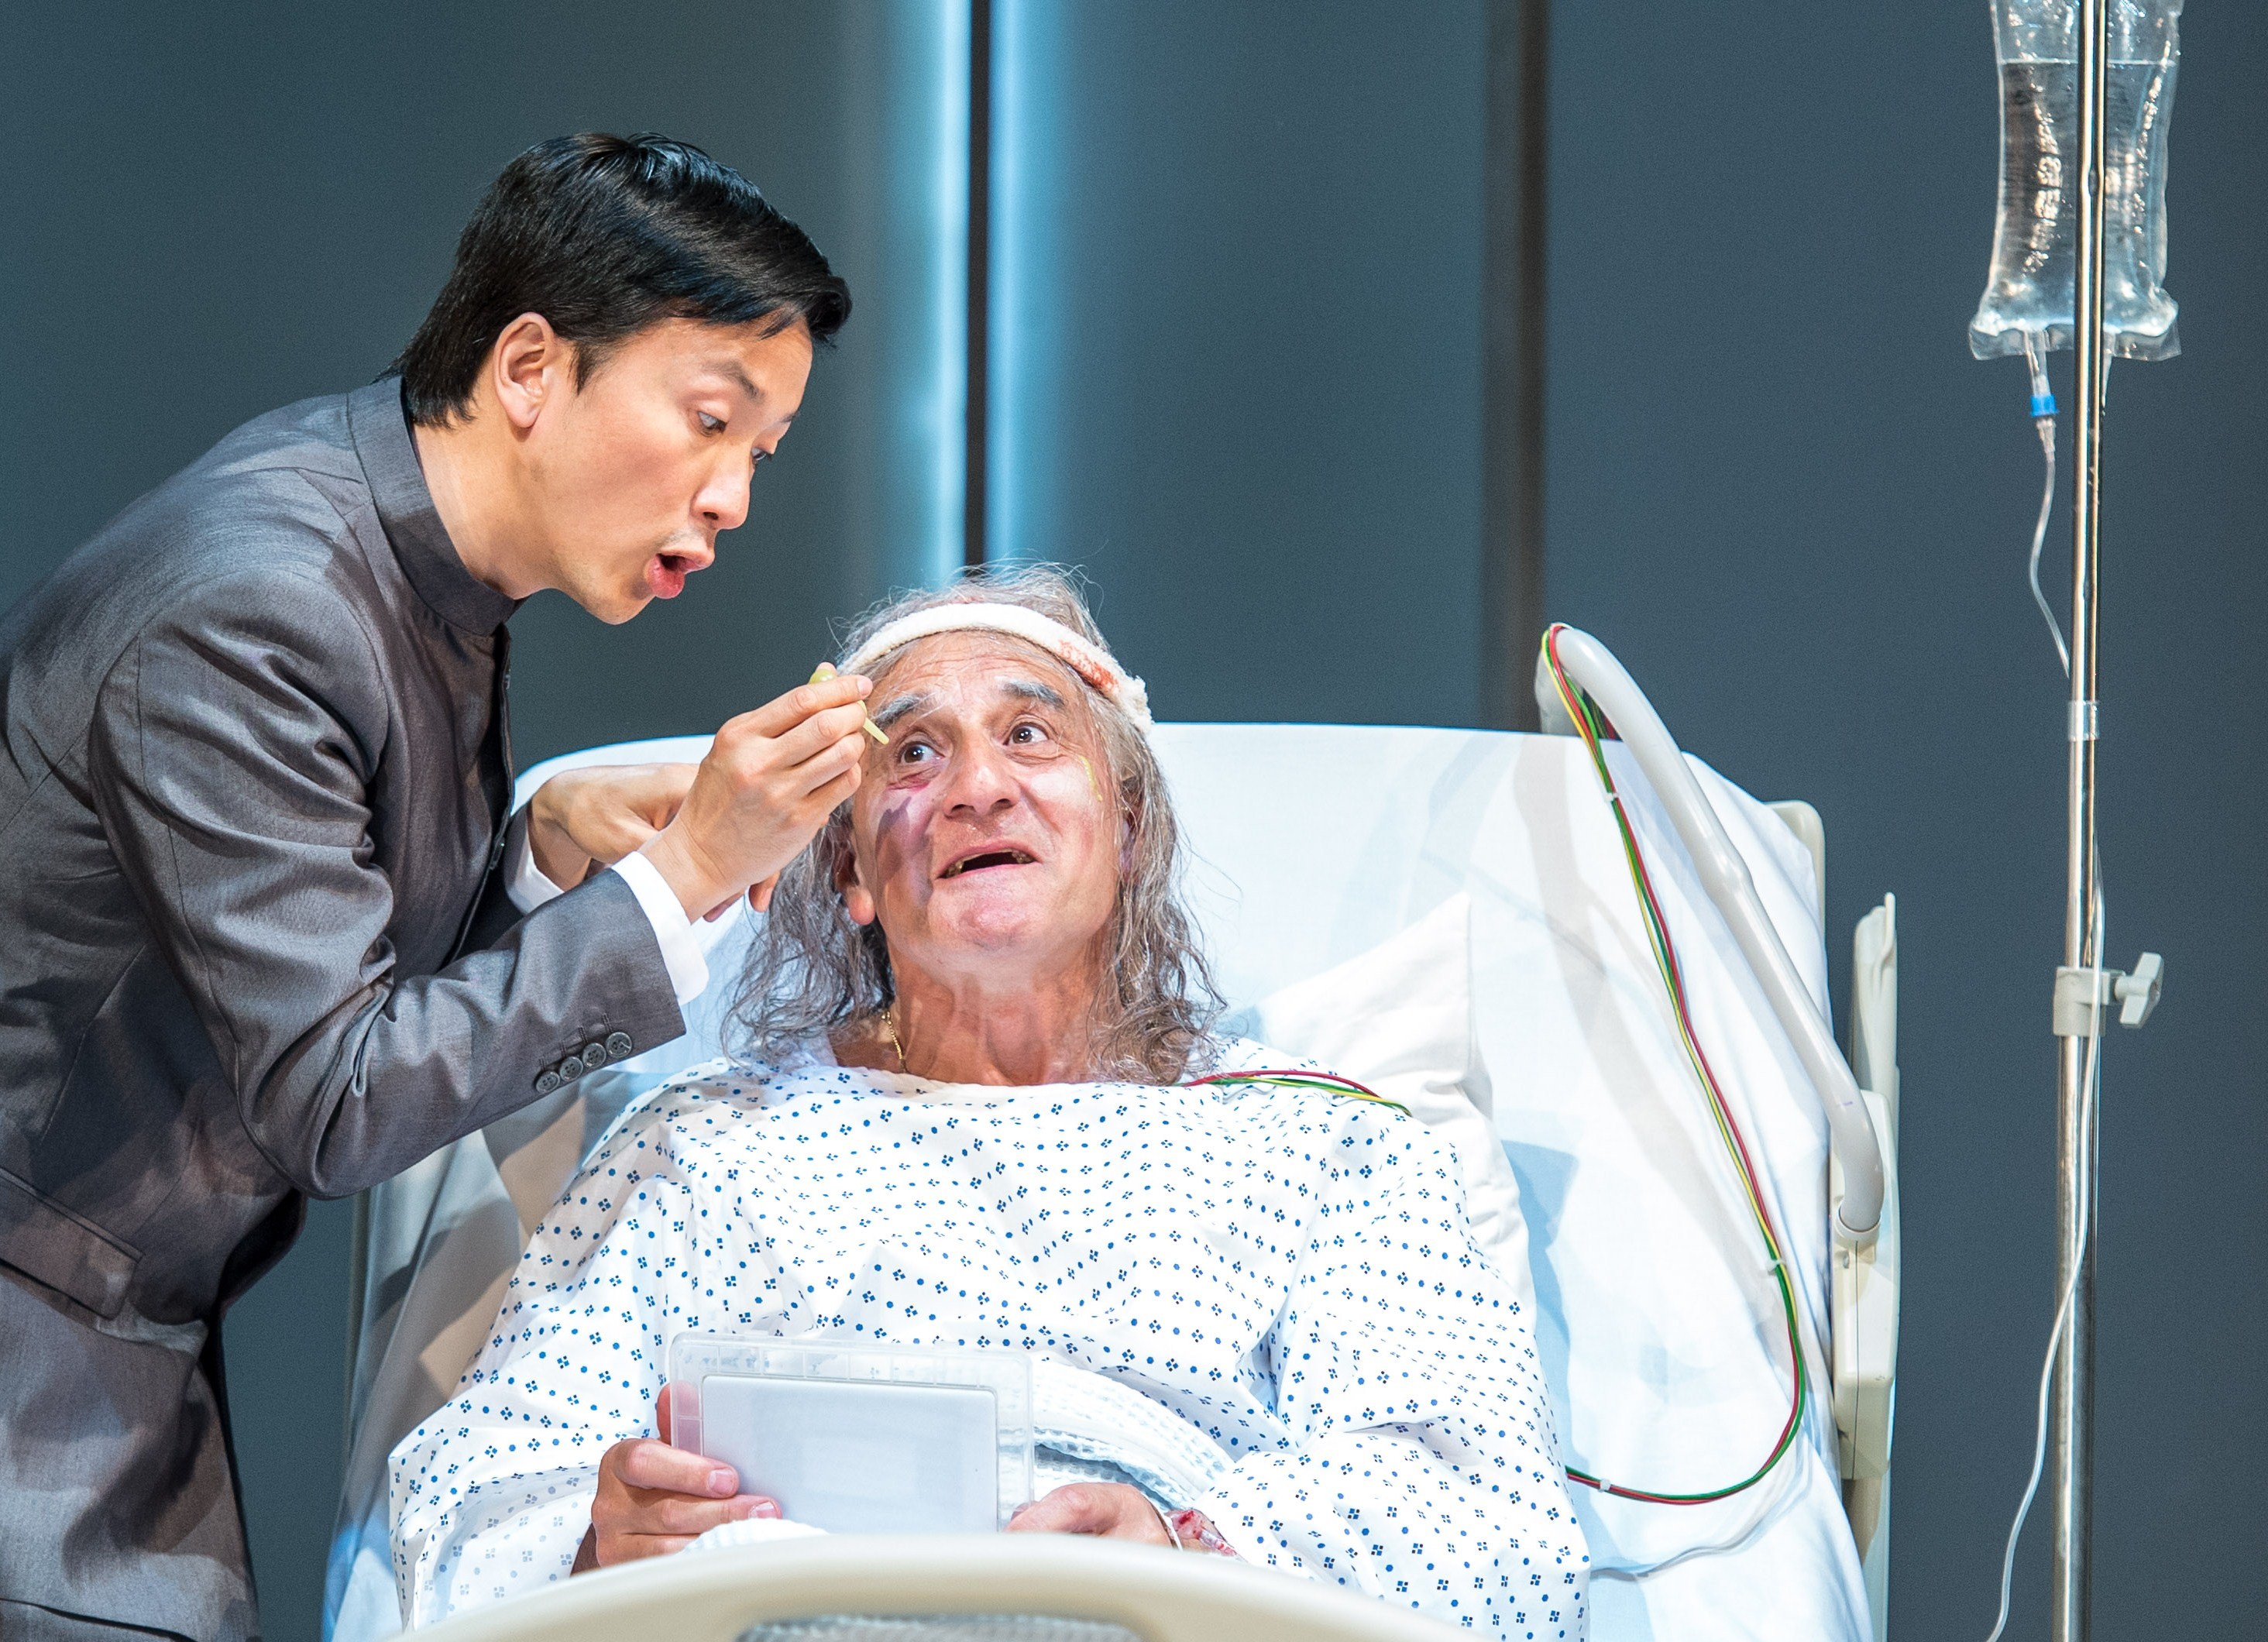 The invalid - Volpone (Henry Goodman) attended by Mosca (Orion Lee). Photo by Manuel Harlan.